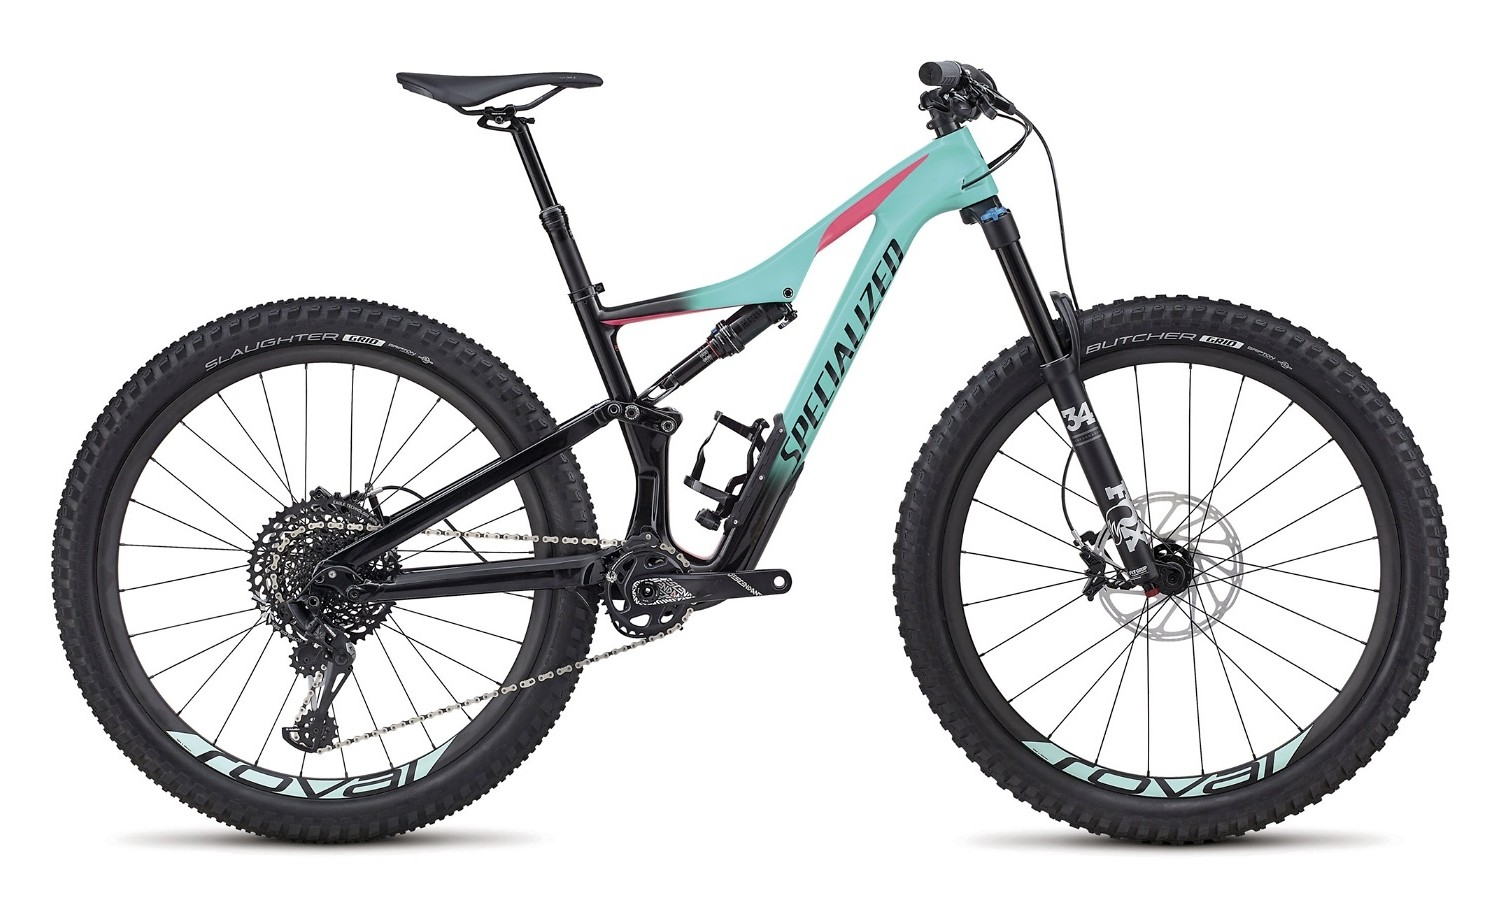 Specialized Rhyme Expert Carbon 27.5 6 Fattie Womens Mountain Bike